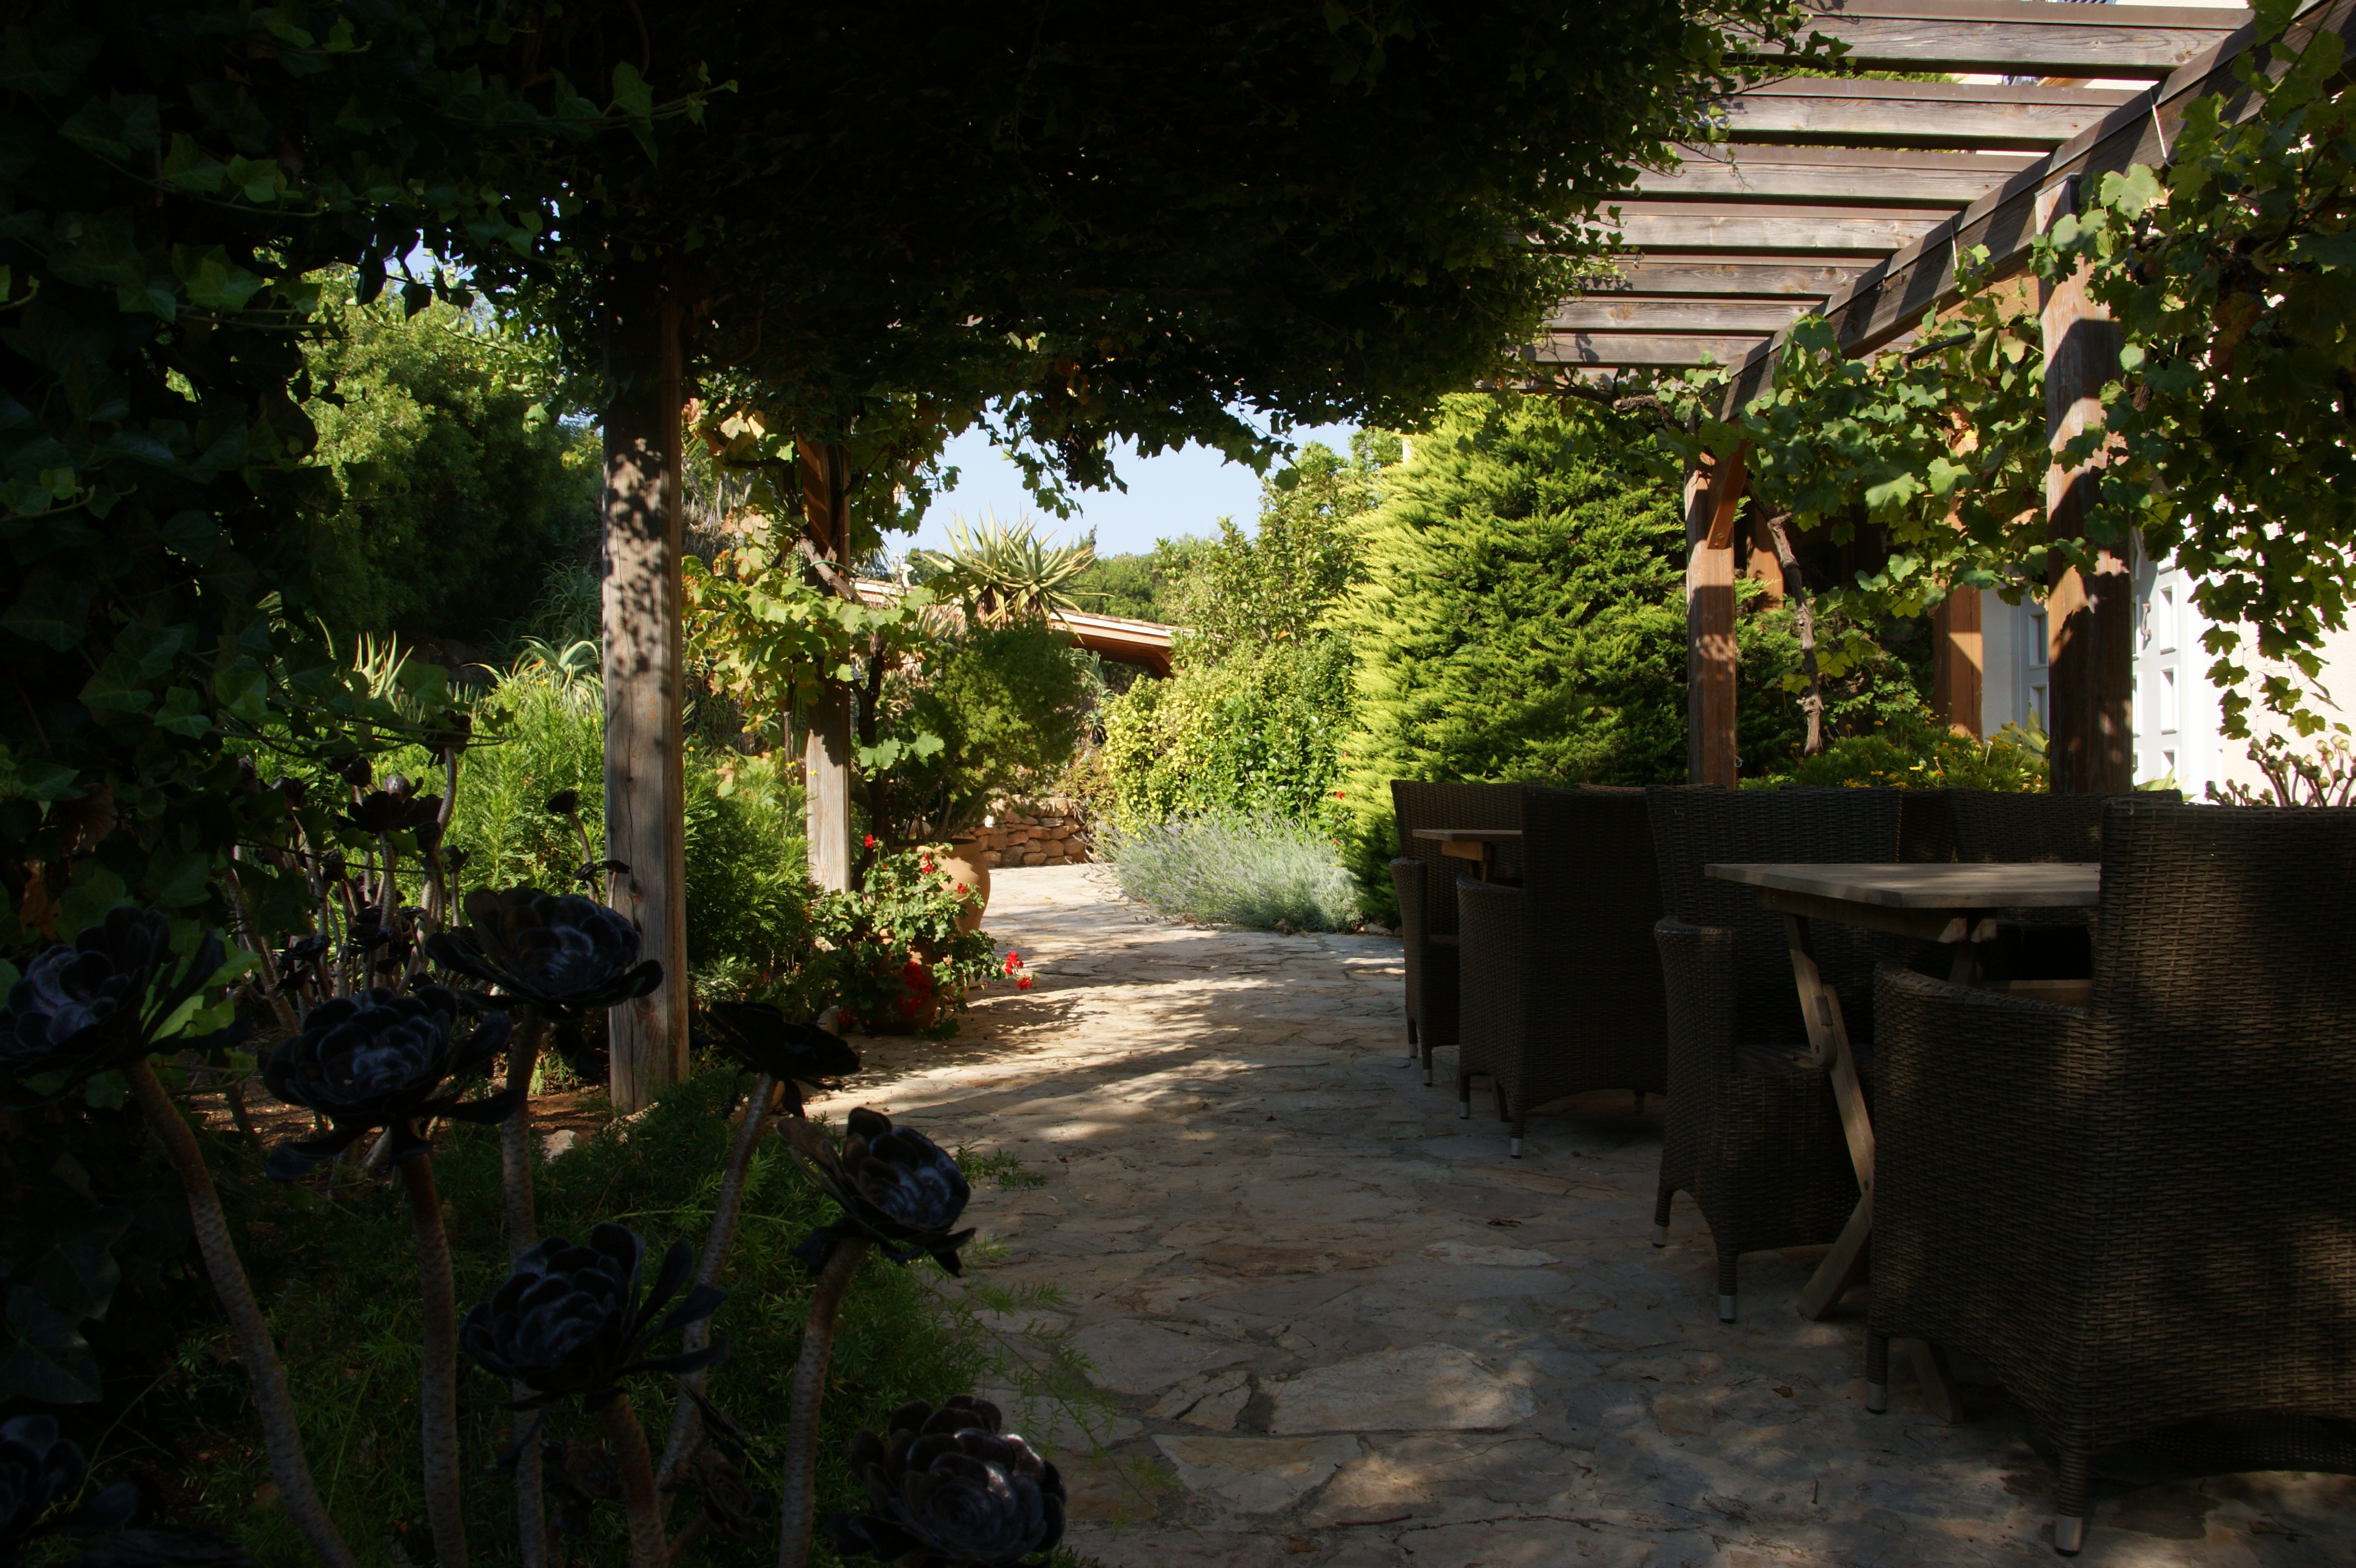 Terrasse vor dem Haus / Terrace in front of the house